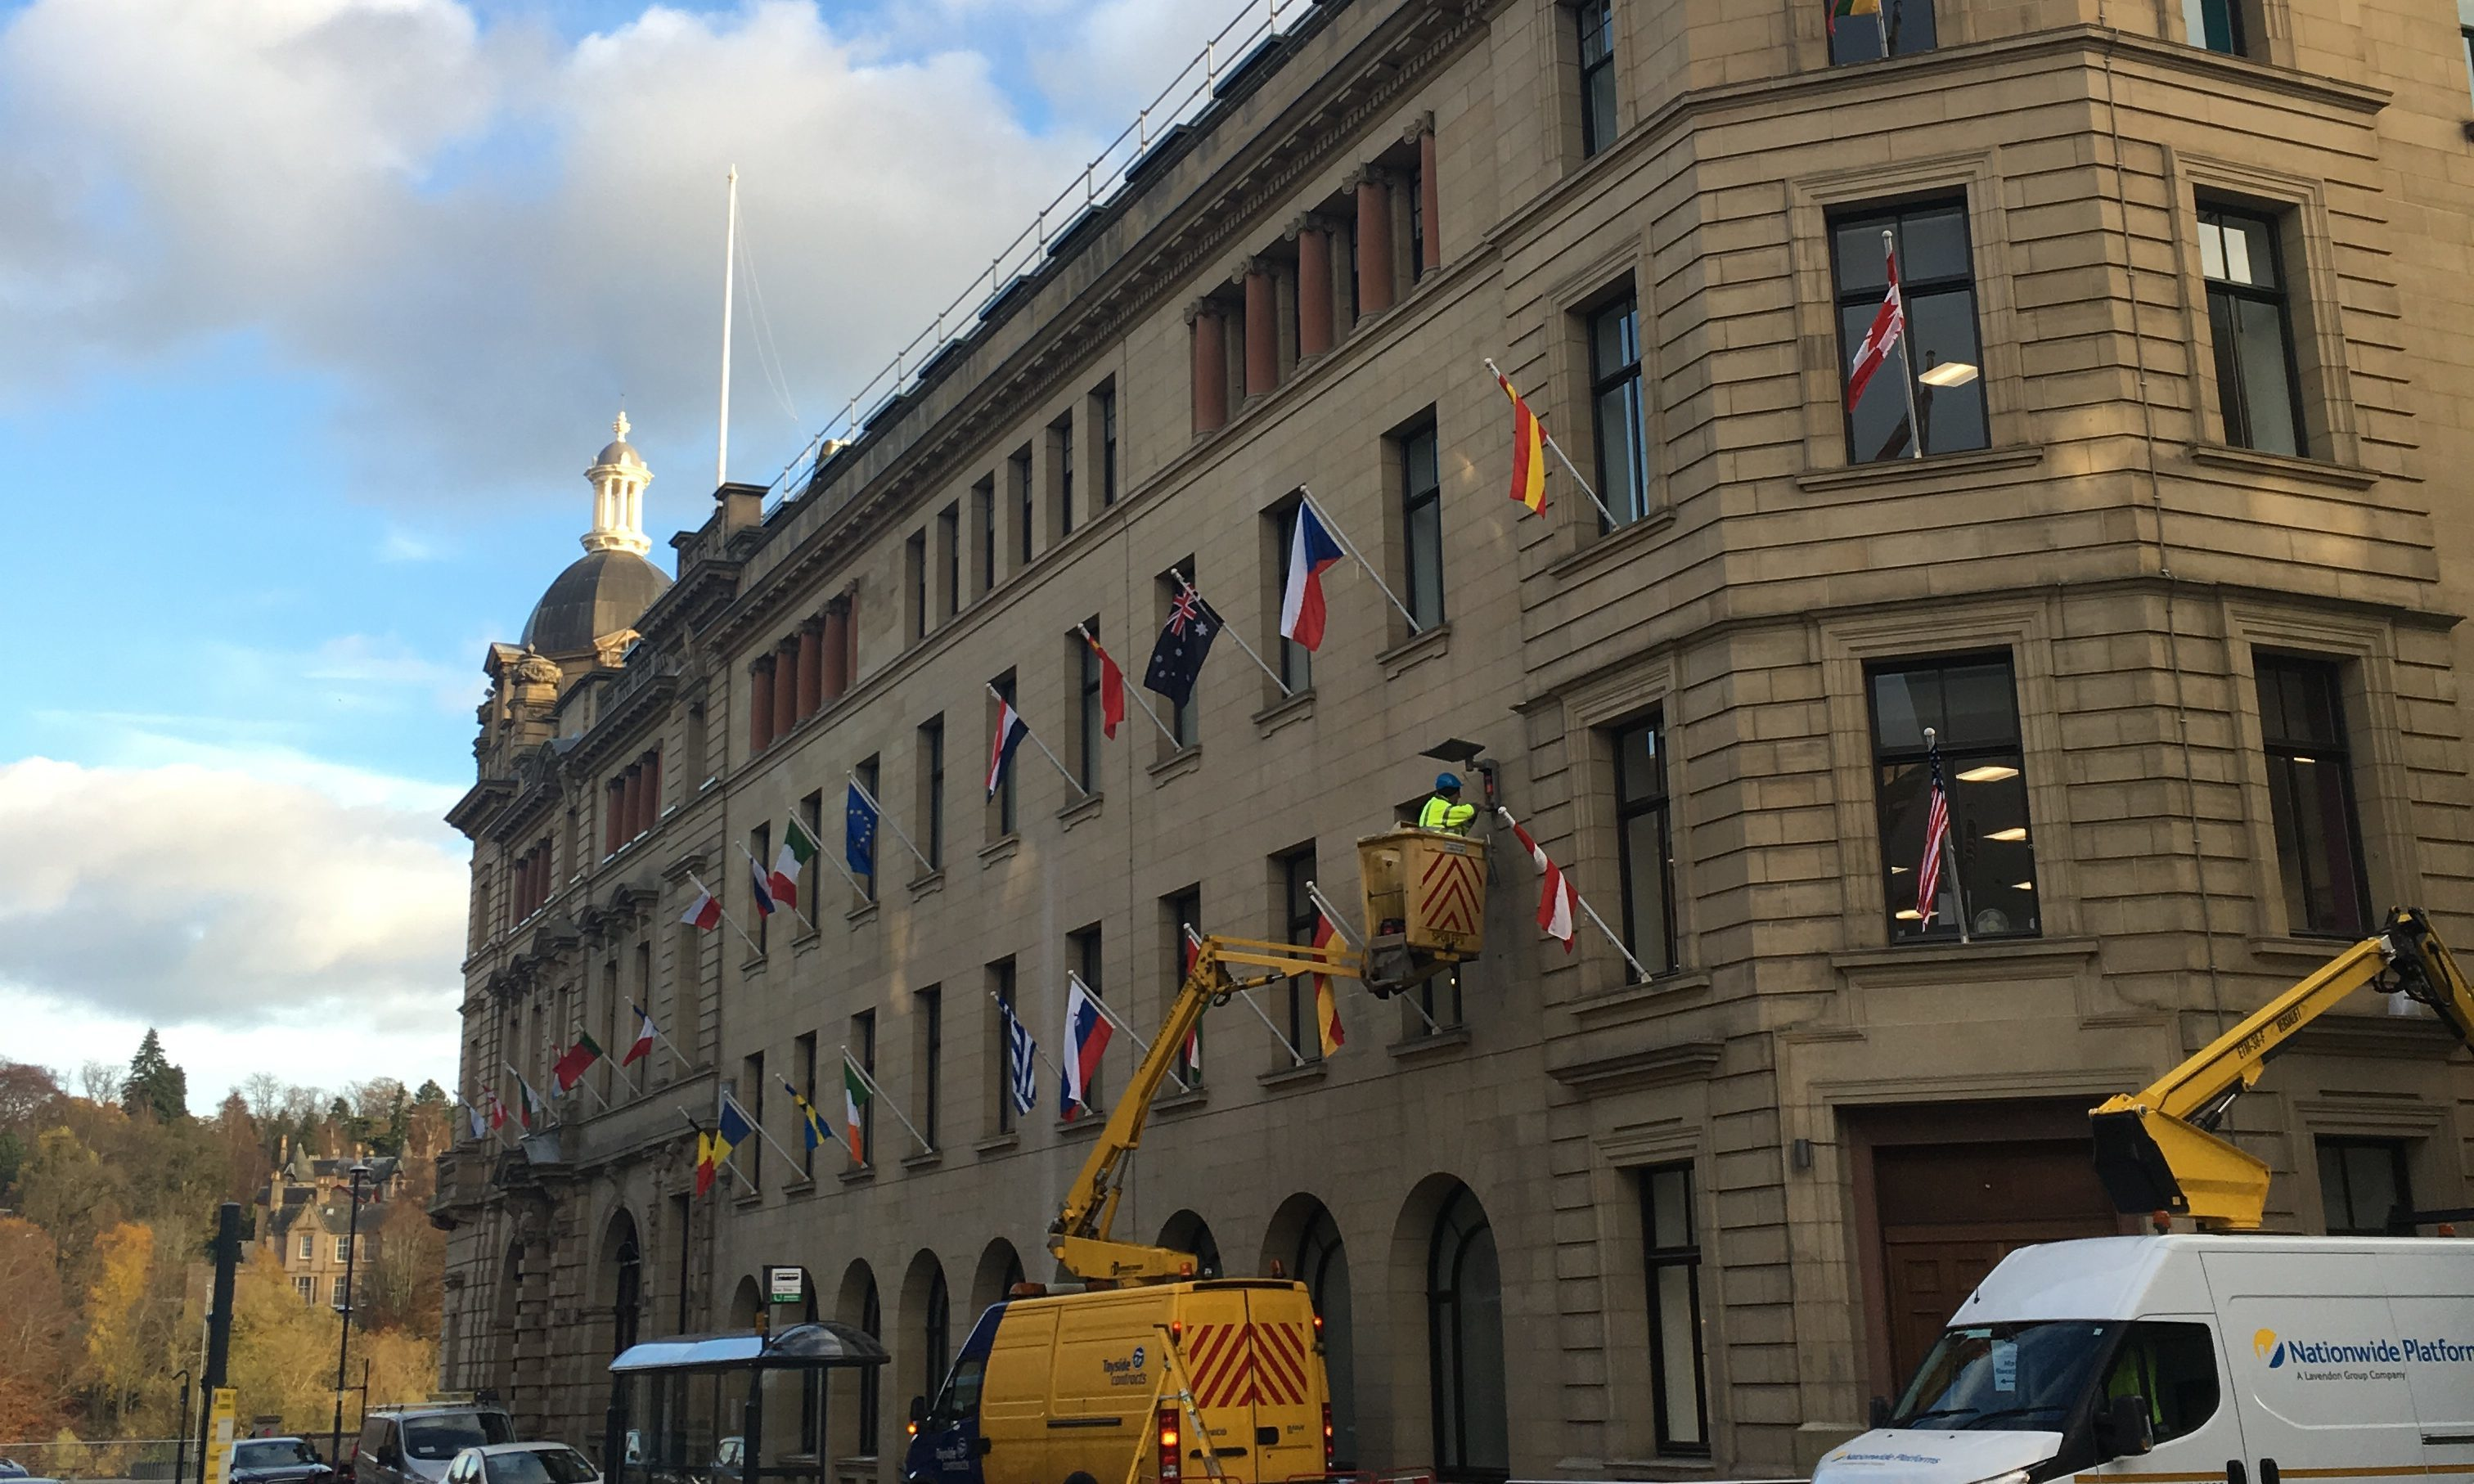 The Union flag is missing from its traditional place at the Perth and Kinross Council HQ.